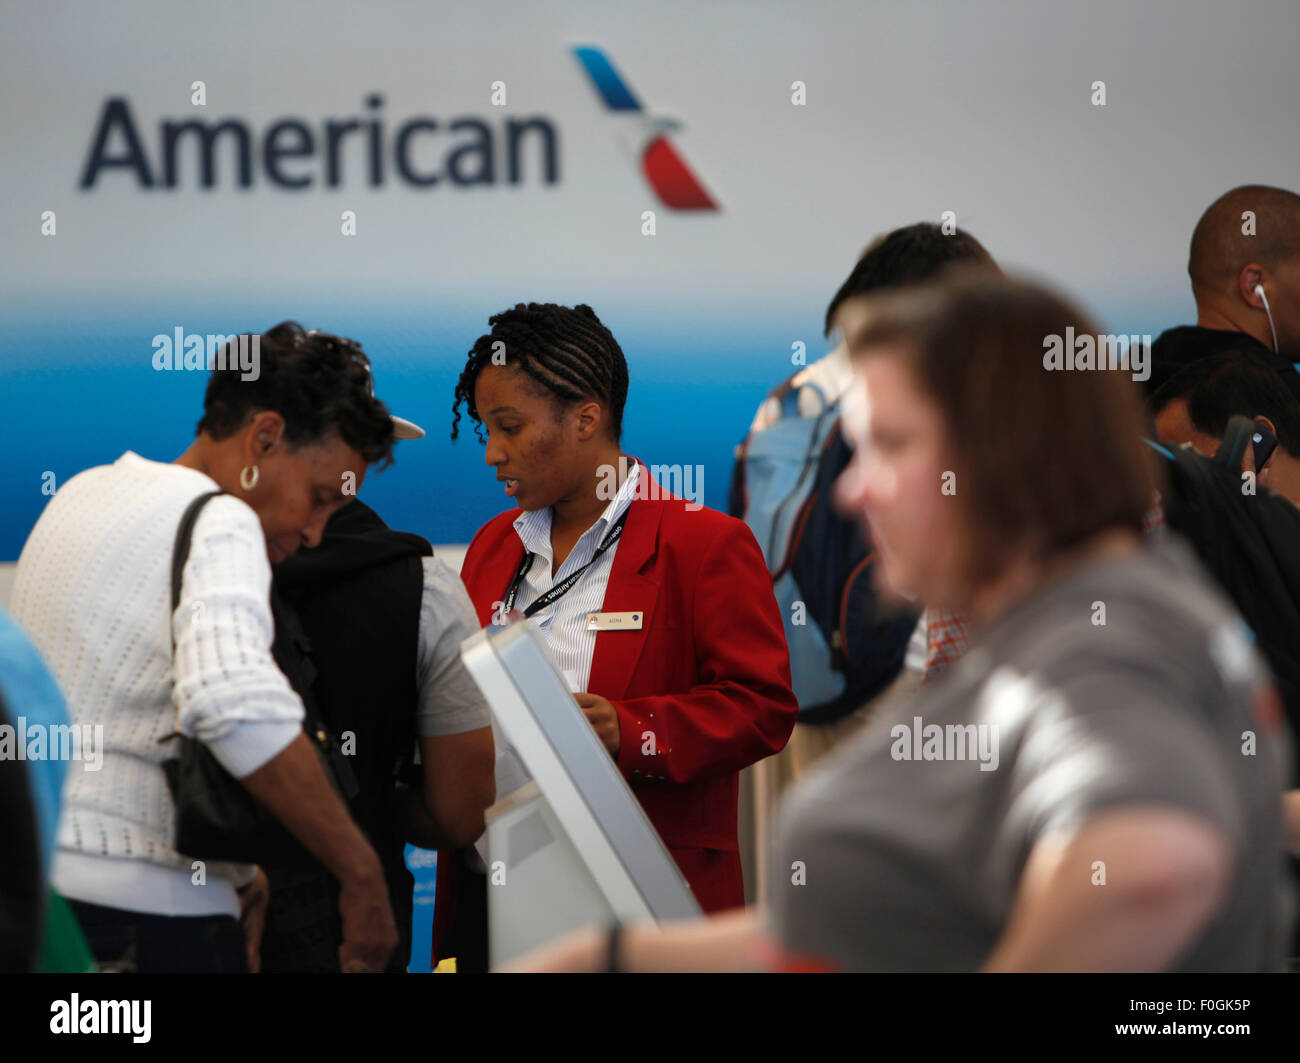 Washington, DC, USA. 15th Aug, 2015. An American Airline staff helps passengers check in at Ronald Regan National - Stock Image